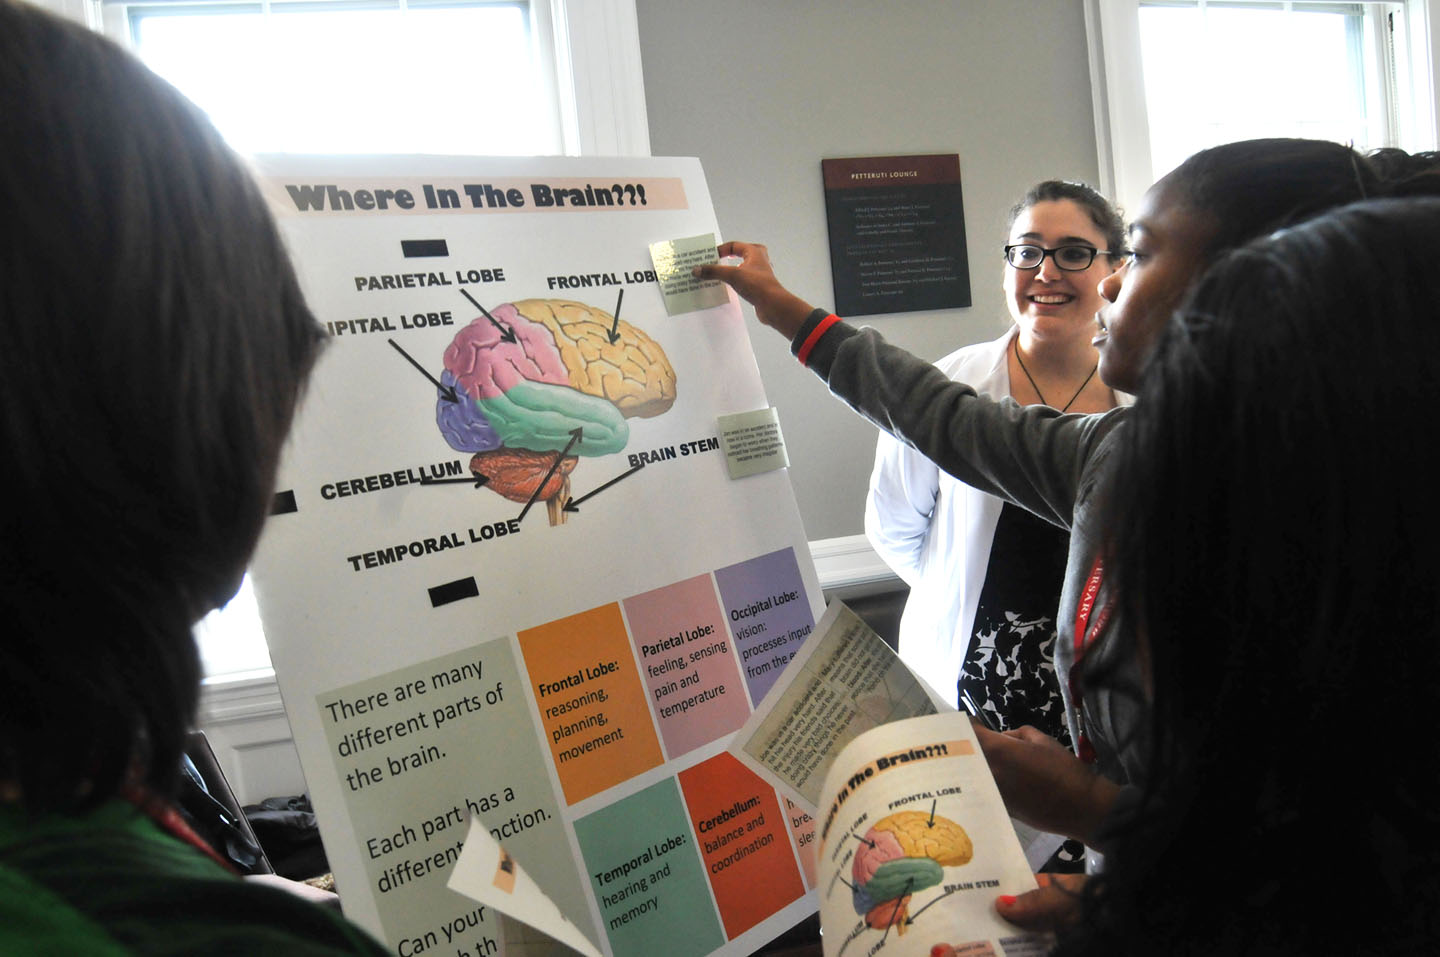 Pin the sticker on the brain: Medical student Zoe Weiss leads a session on the geography of the brain, asking middle school students to match a problem with the region of the brain that's involved. Credit: Frank Mullin/Brown University